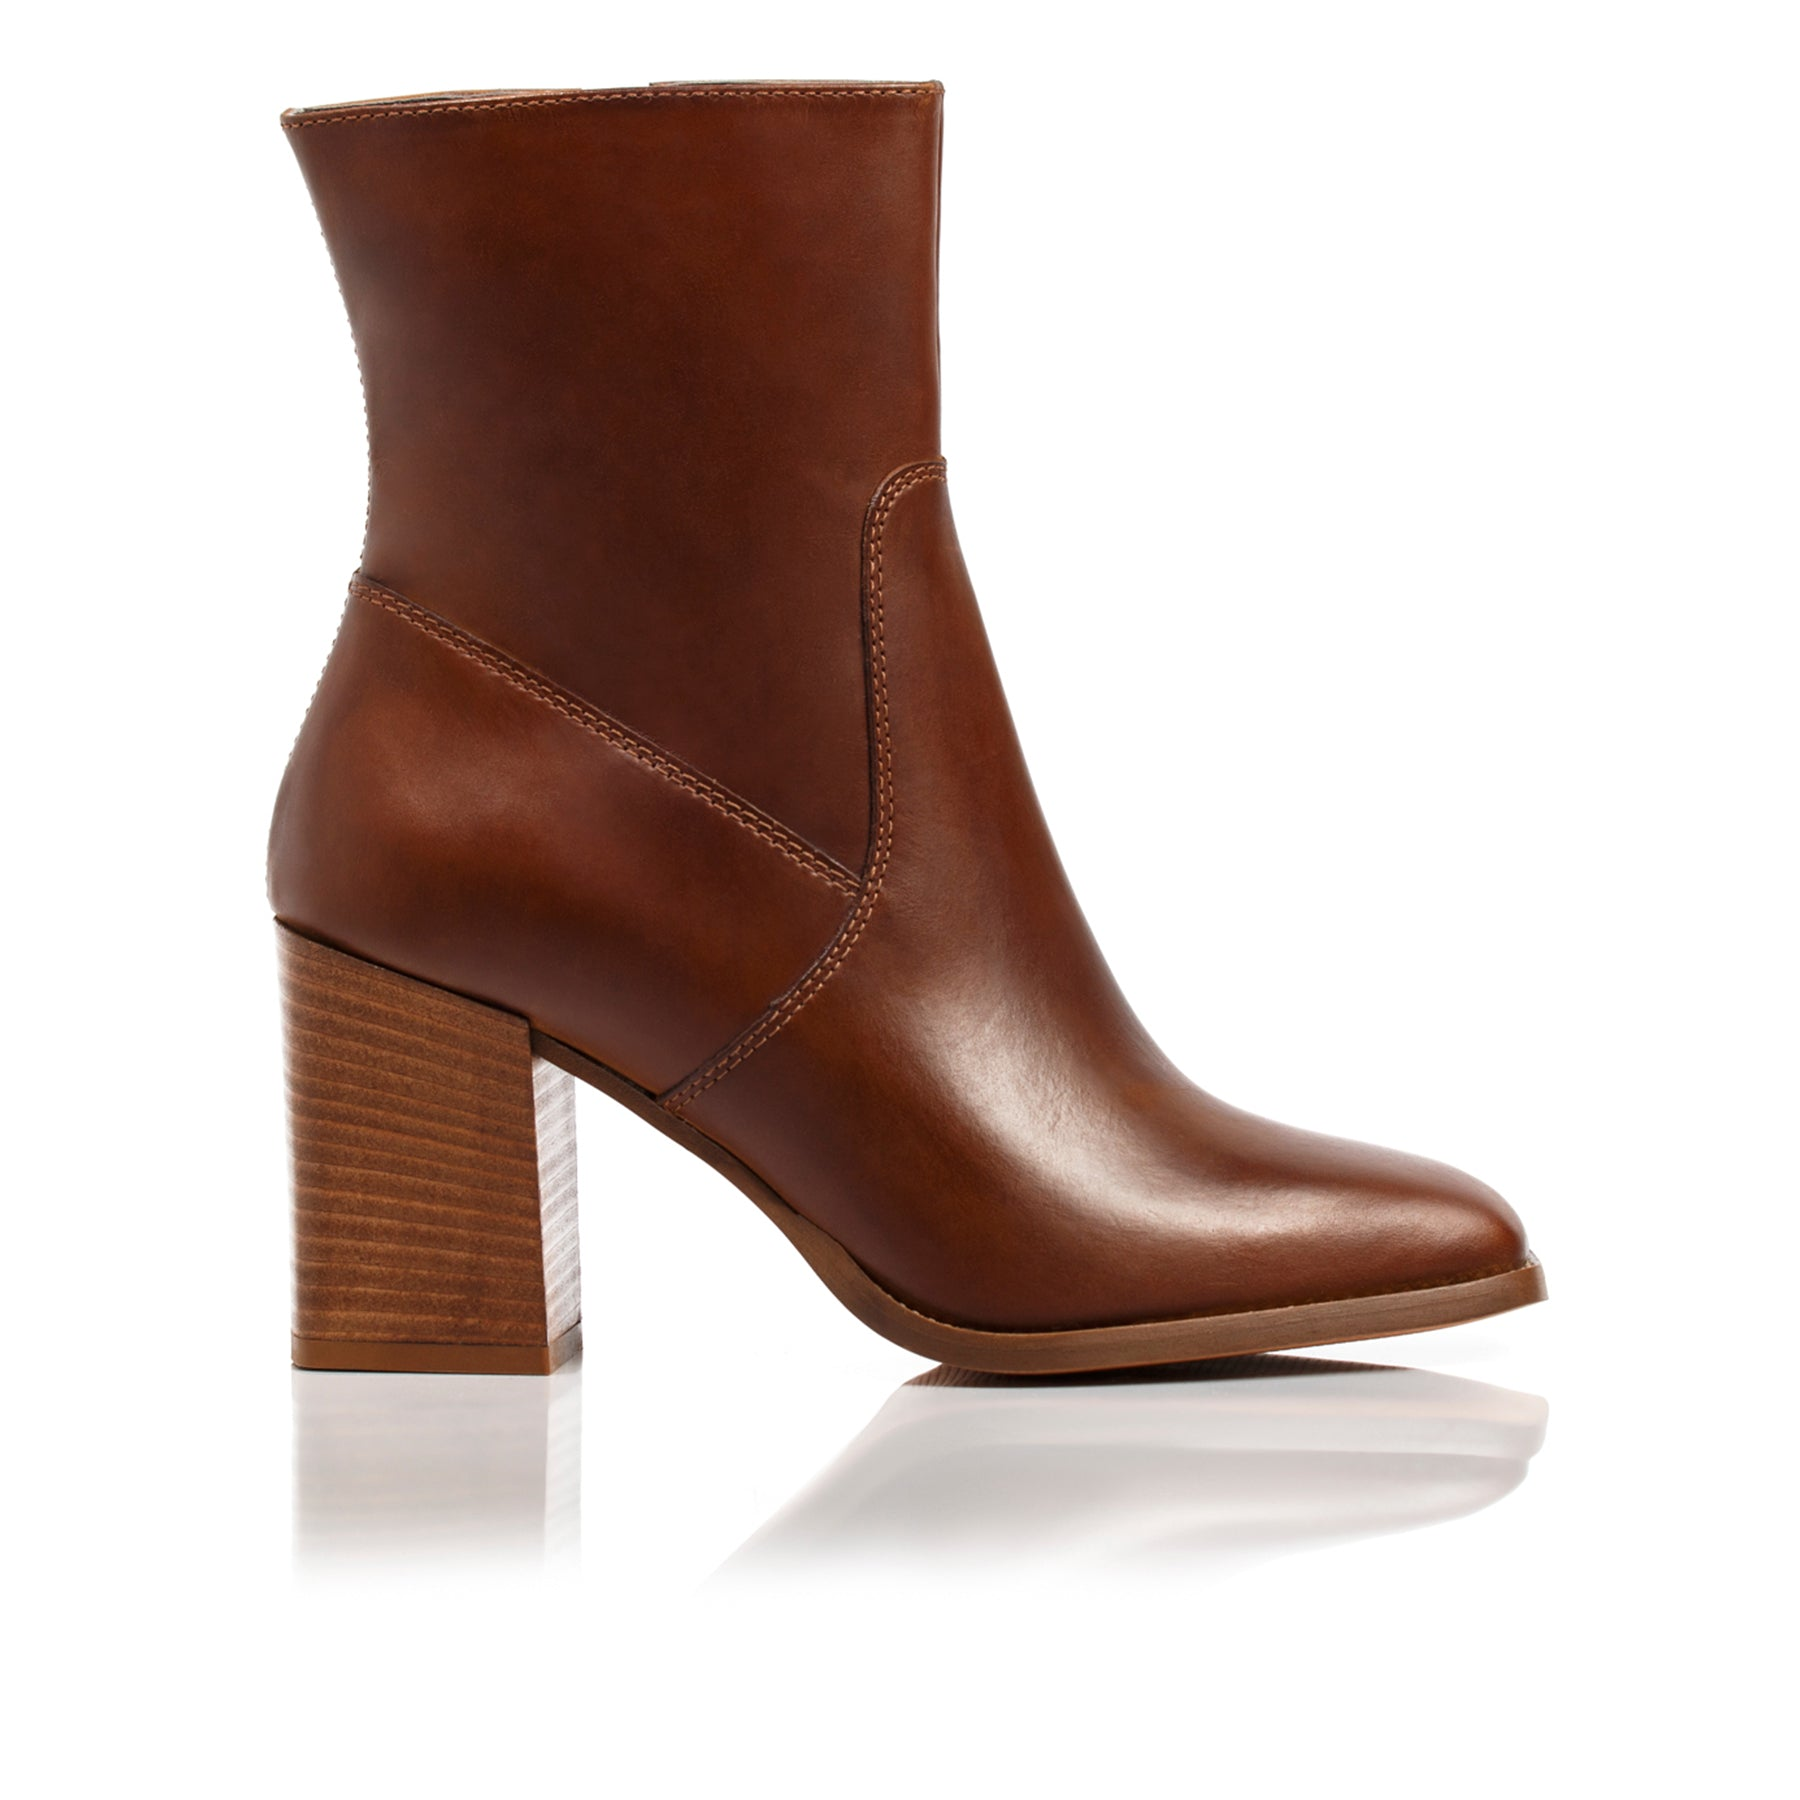 Nadine Tan Leather Ankle Boots